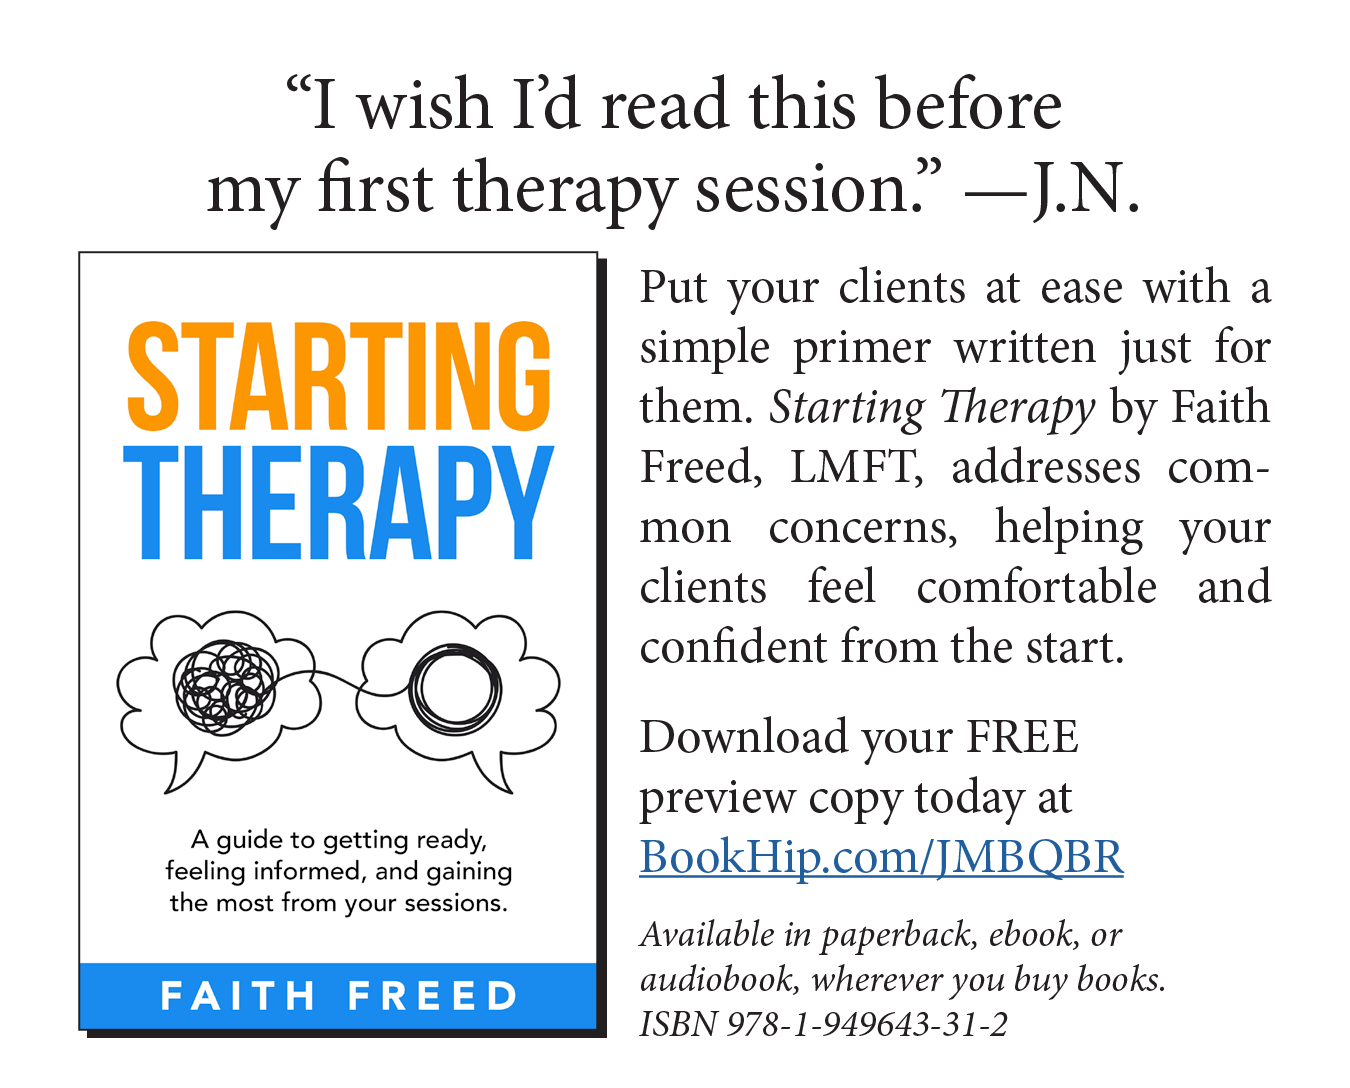 Starting Therapy